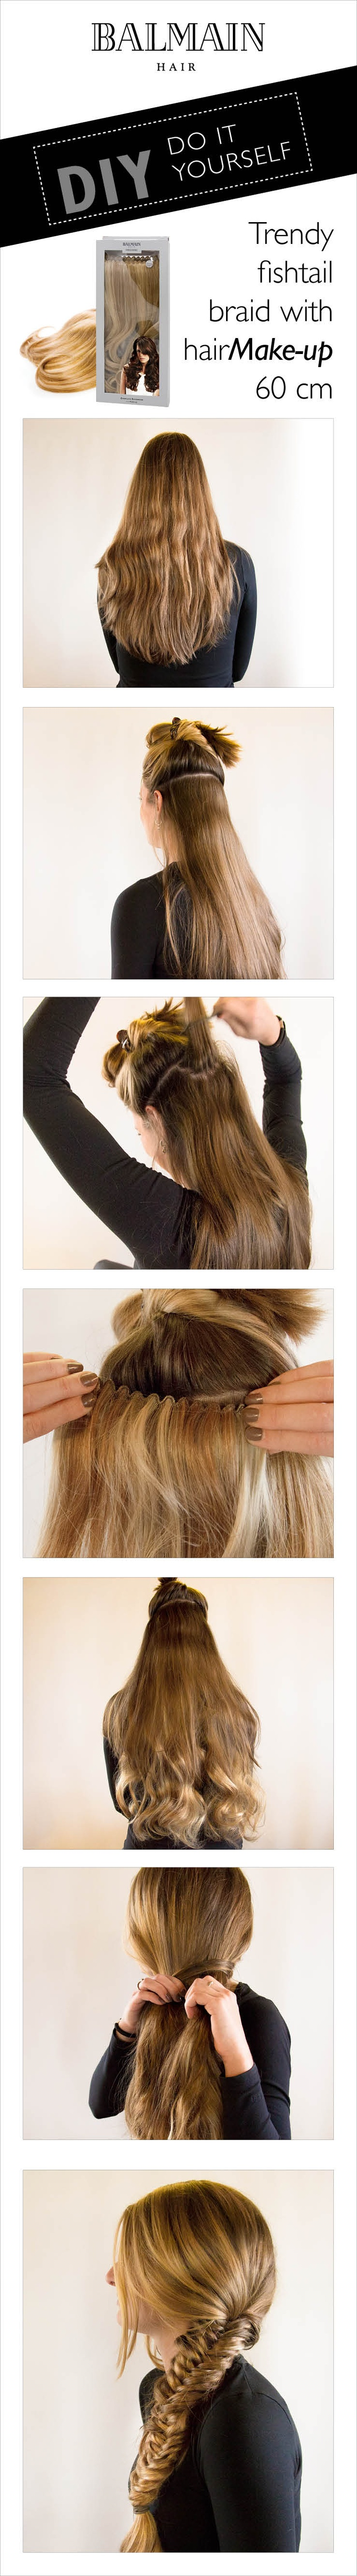 Follow Balmain Hair on Facebook for more tip tricks and DIY's